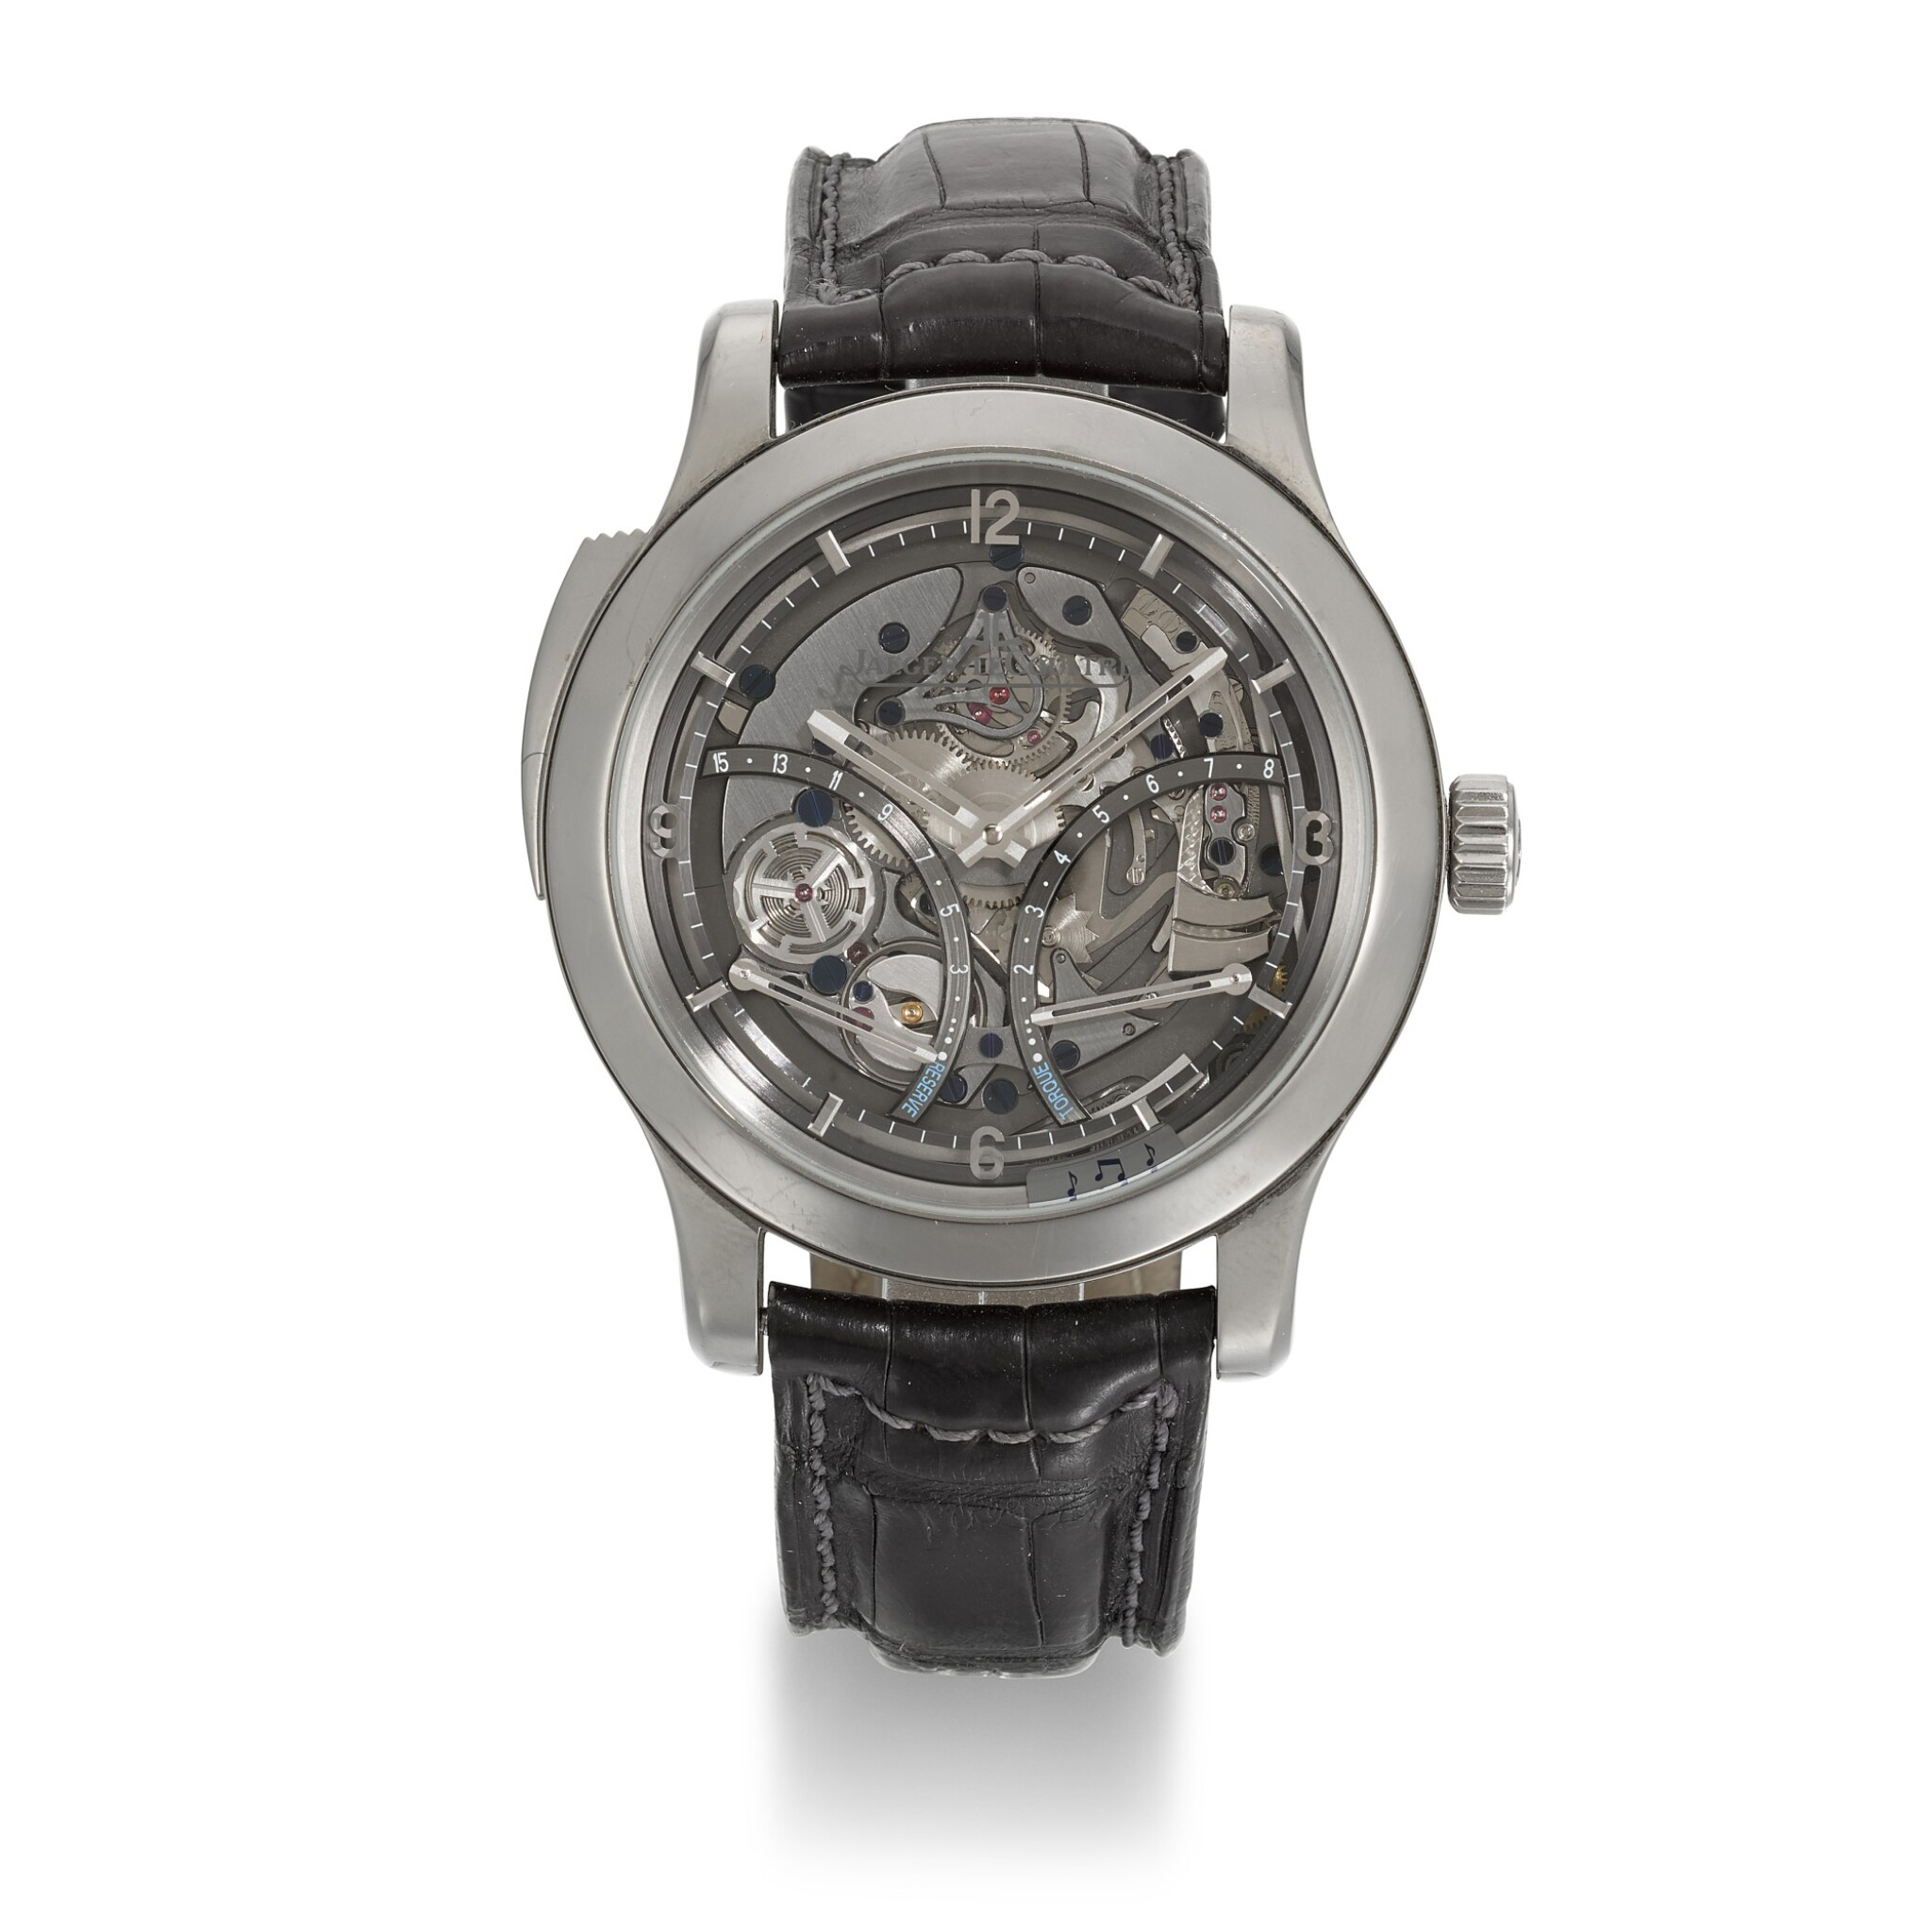 View full screen - View 1 of Lot 353. JAEGER LECOULTRE | MASTER GRANDE TRADITION MINUTE REPEATER, REF 151.T.67.S, LIMITED EDITION TITANIUM SKELETONISED MINUTE REPEATING WRISTWATCH WITH 15-DAY POWER RESERVE AND TORQUE INDICATION, CIRCA 2012.